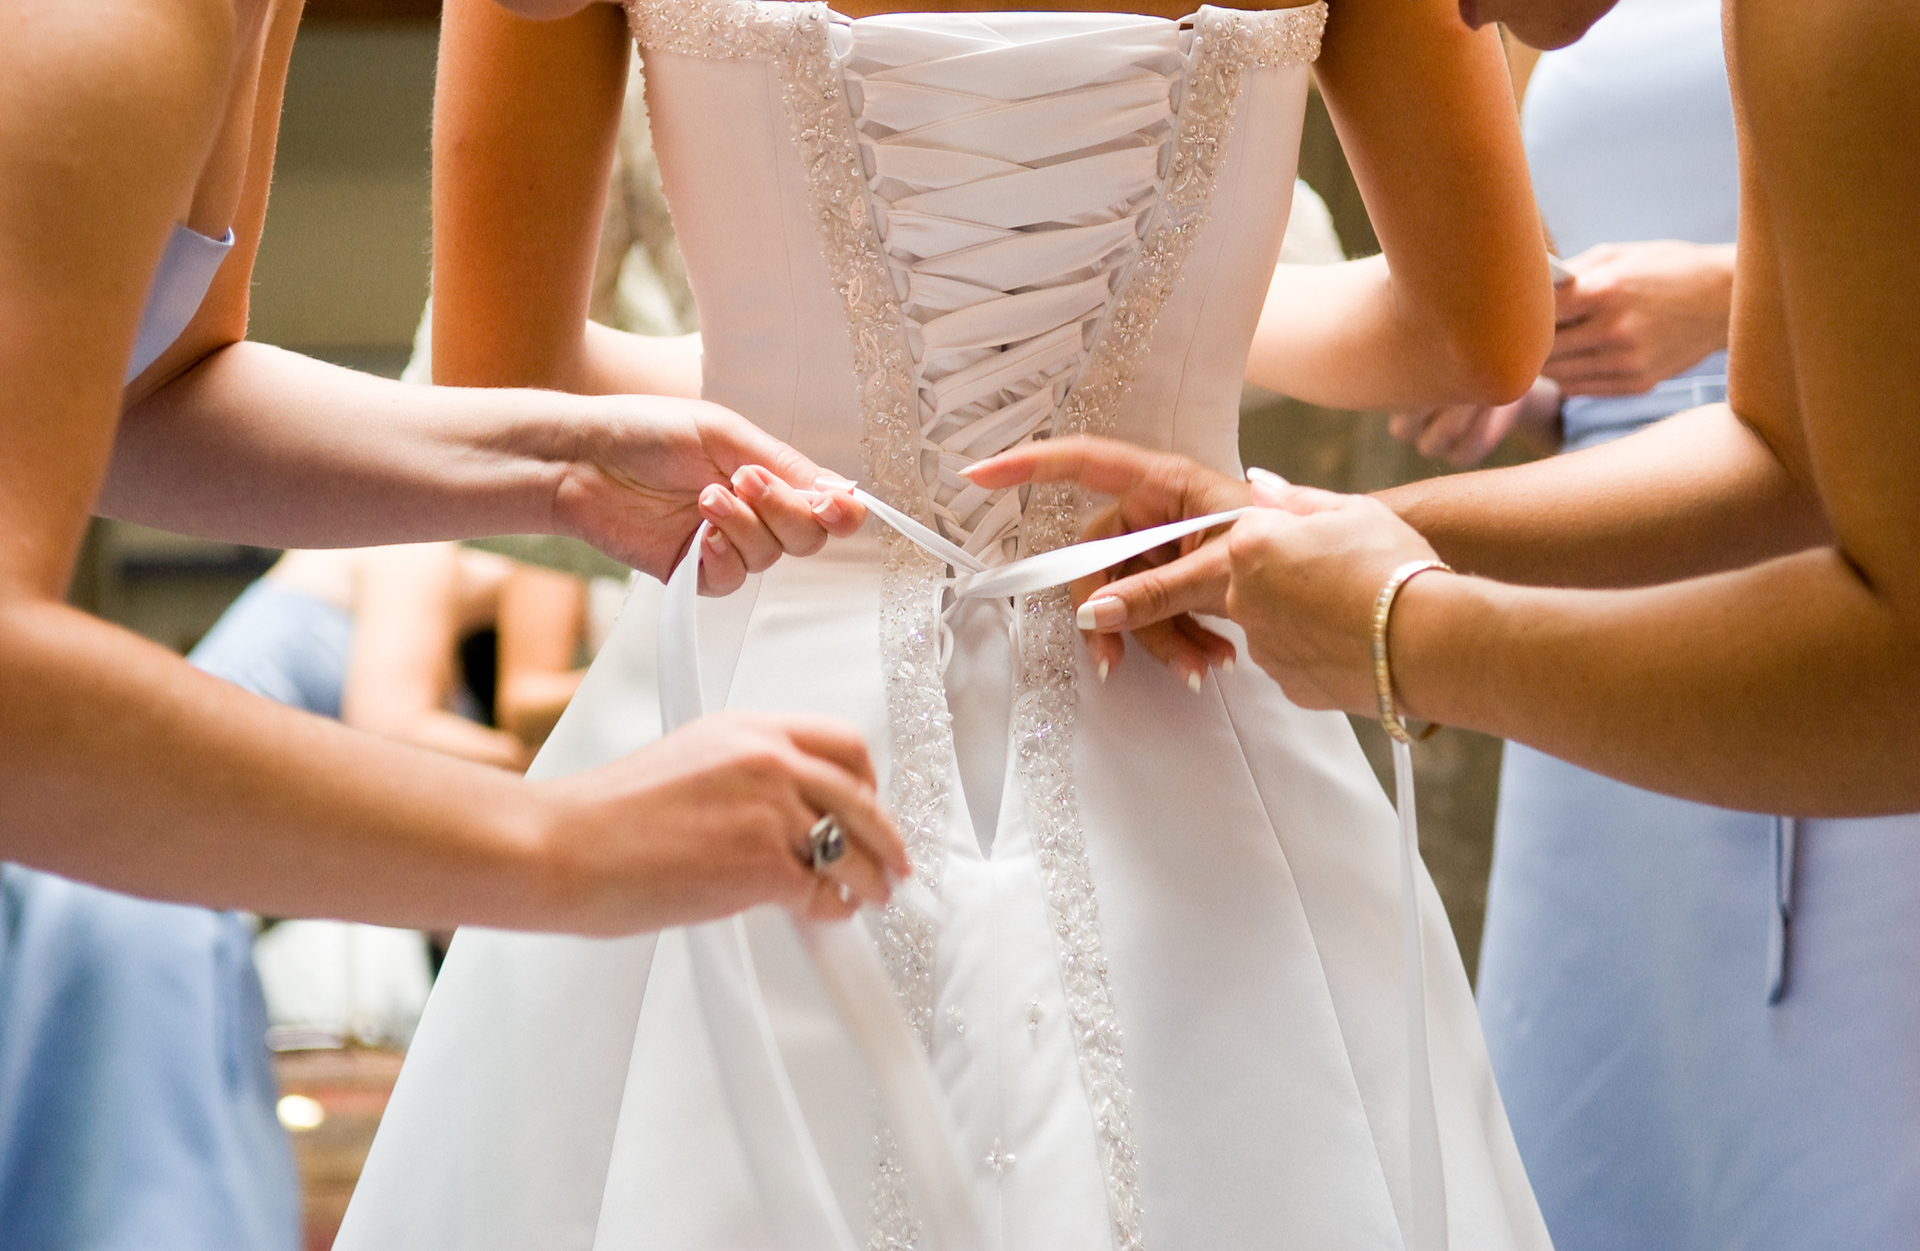 Bridesmaid stunned by bride's 'invasive' request